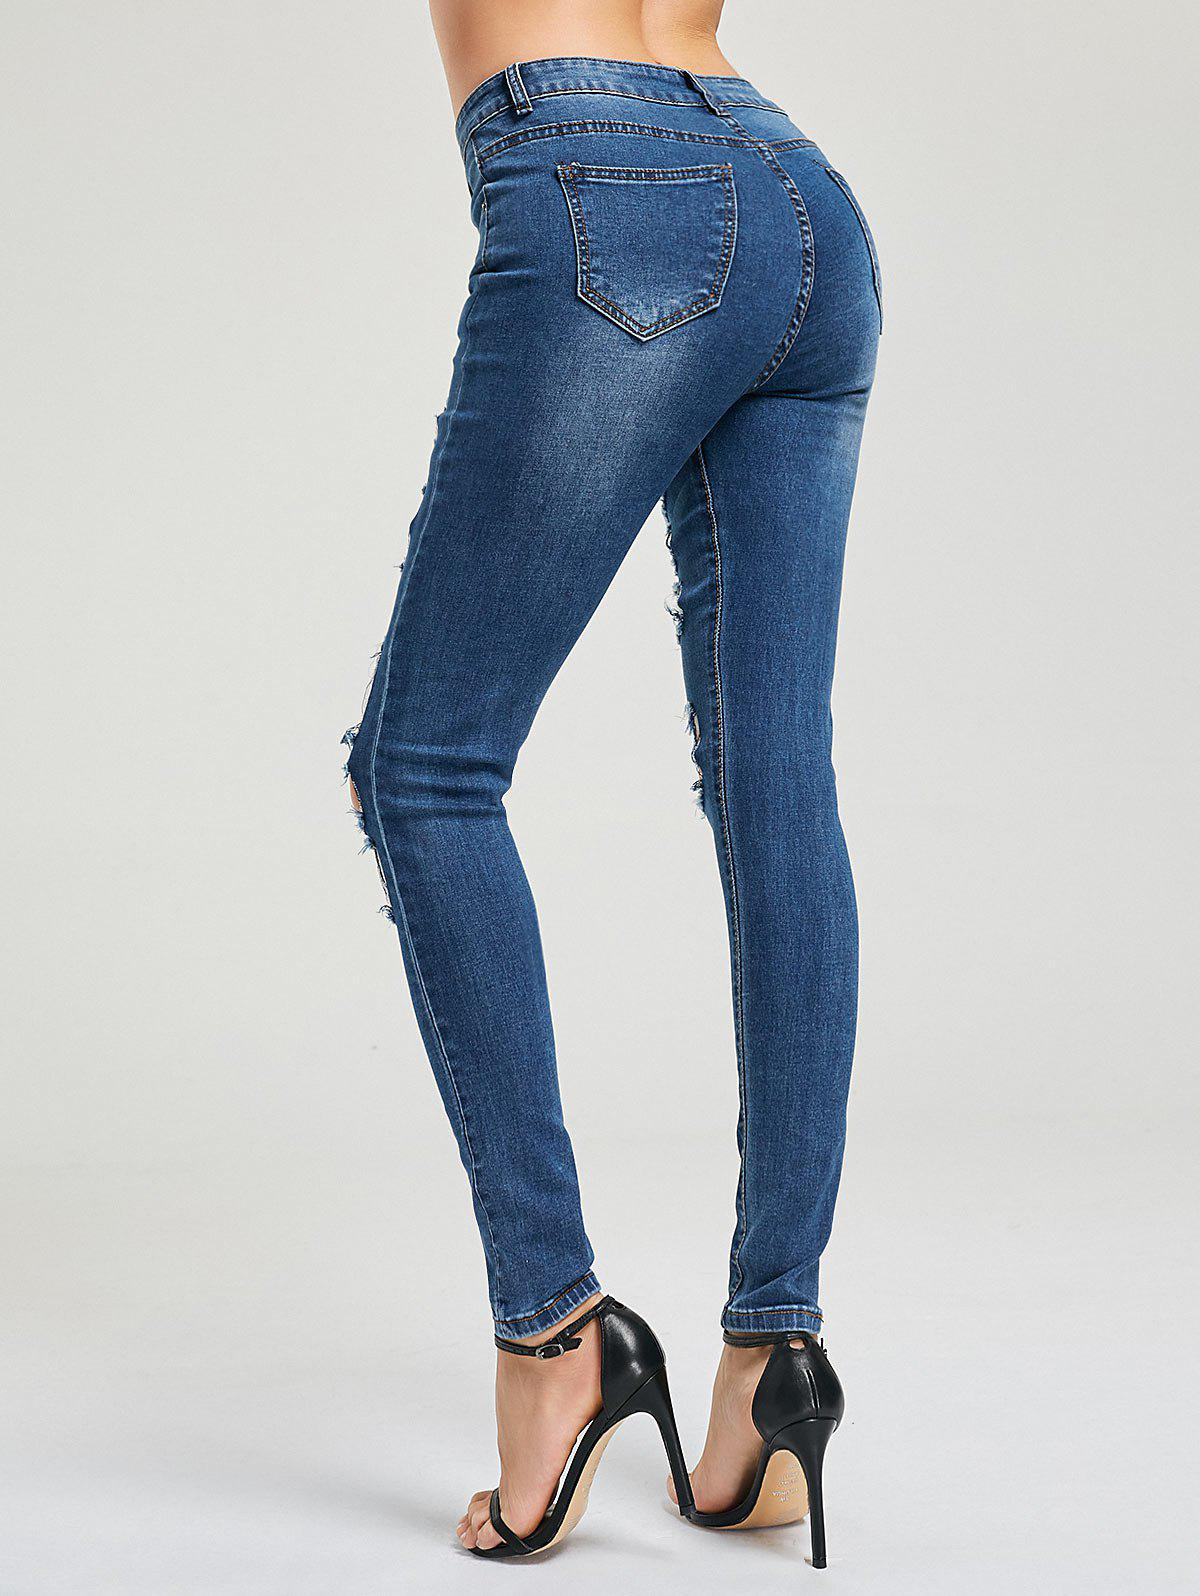 Cat's Whisker Ripped Jeans - BLUE XL